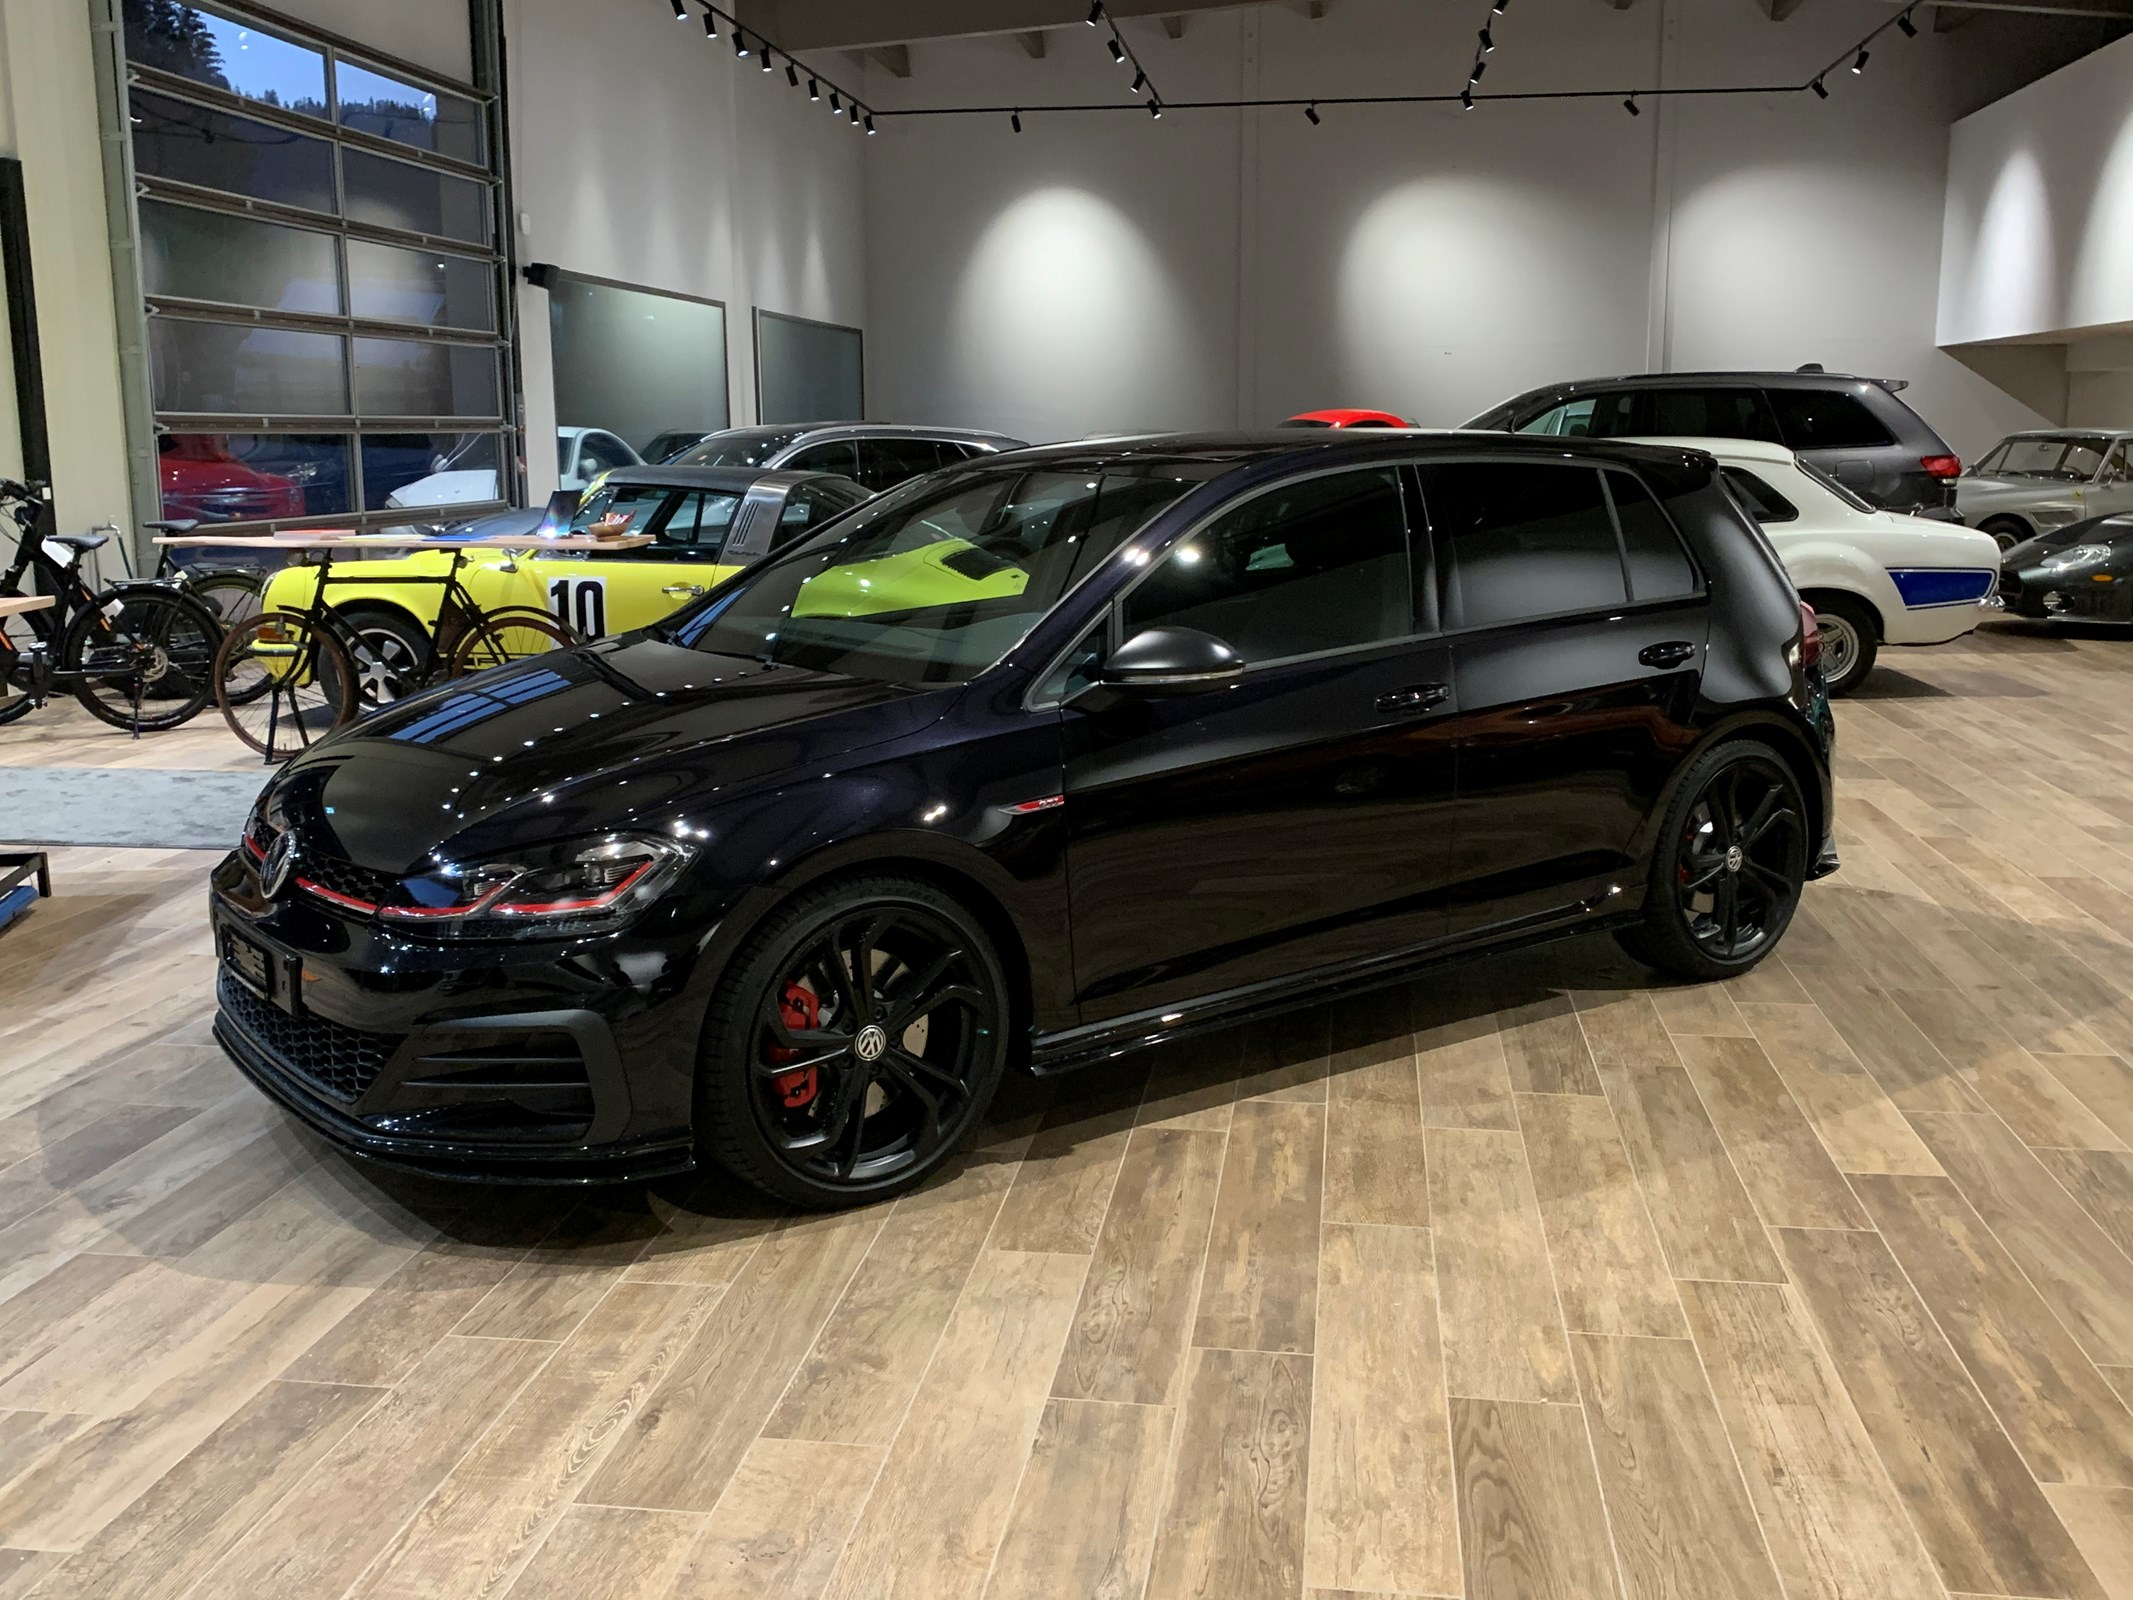 saloon VW Golf 2.0 TSI GTI TCR DSG